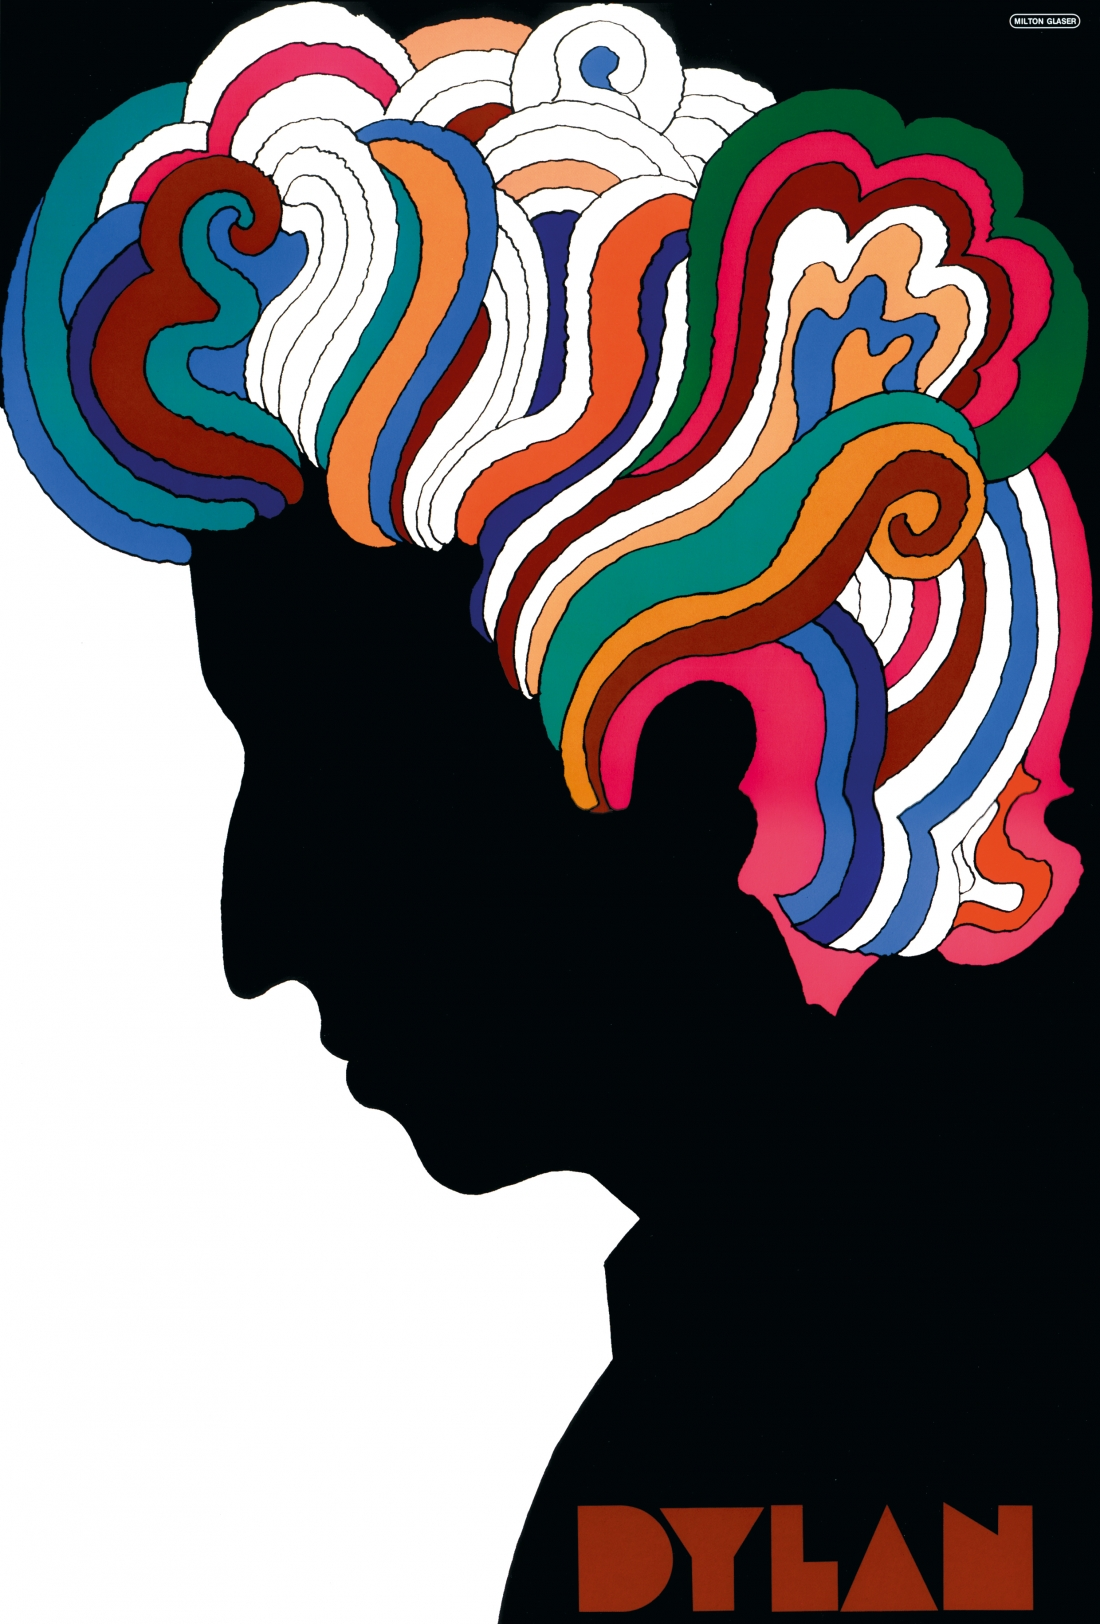 CBS records commissioned Milton Glaser to design a special poster for the album  Bob Dylan's Greatest Hits . Taking inspiration from a  Marcel Duchamp self-portrait , Glaser depicted Dylan in profile, his abundant curly hair rendered in saturated colors that stood out in high contrast from the white ground. The energetic design with its swirling streams of color evokes the visual effects of the psychedelic drugs that were gaining popularity amongst members of the counter culture.